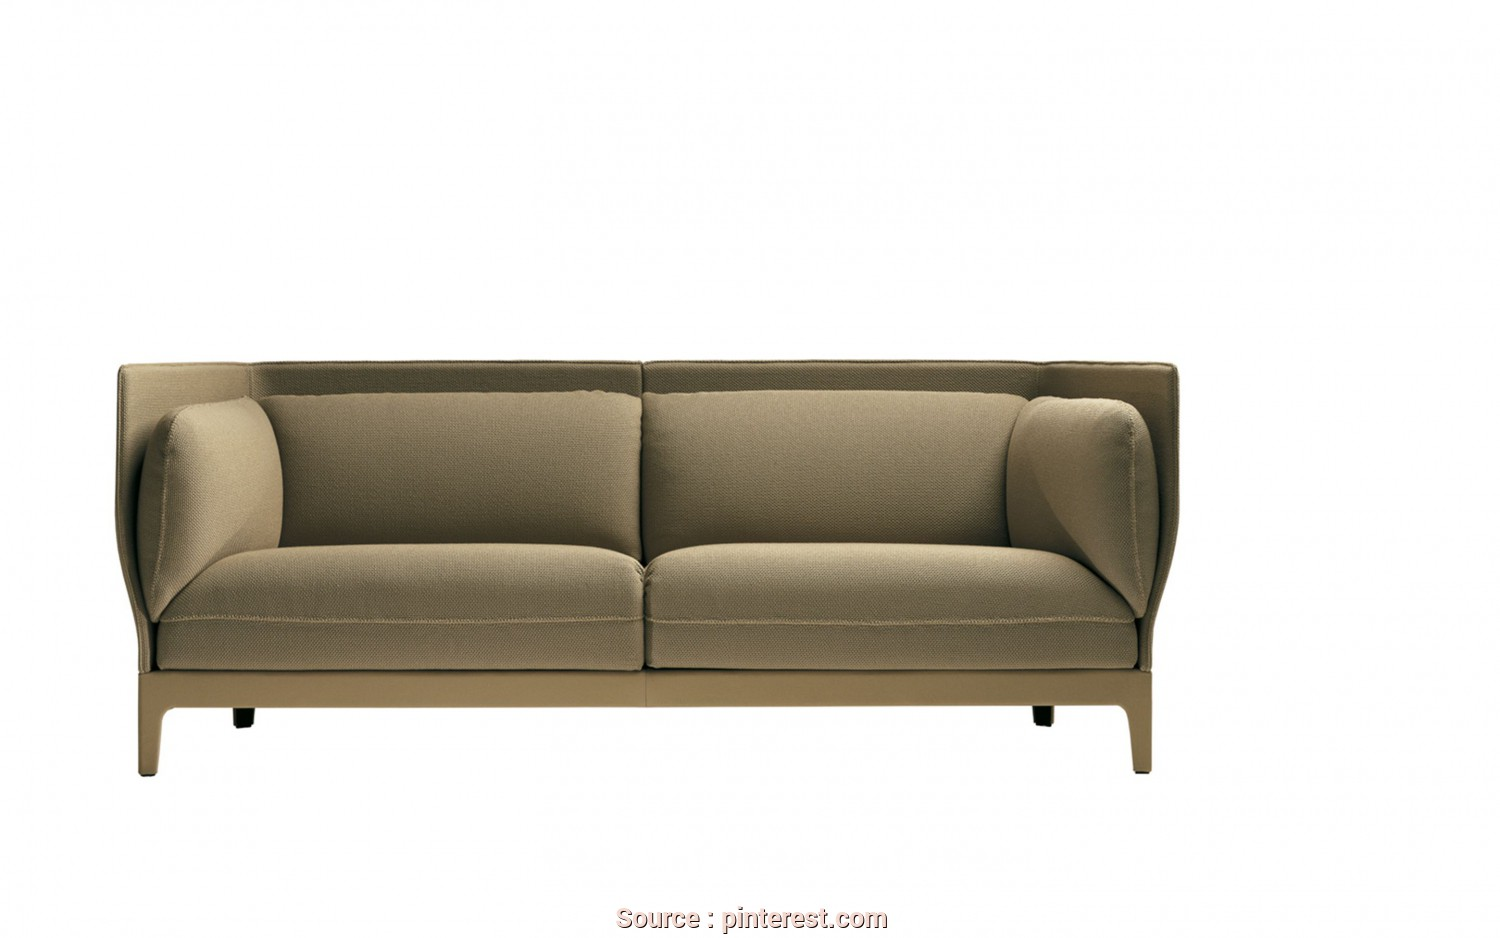 Divano Frau Rosa, Ideale Poltrona Frau Alone Sofa Poltrona Frau Alone Sofa,, Sofa, PLAN@OFFICE Ontworpen Door Poltrona Frau